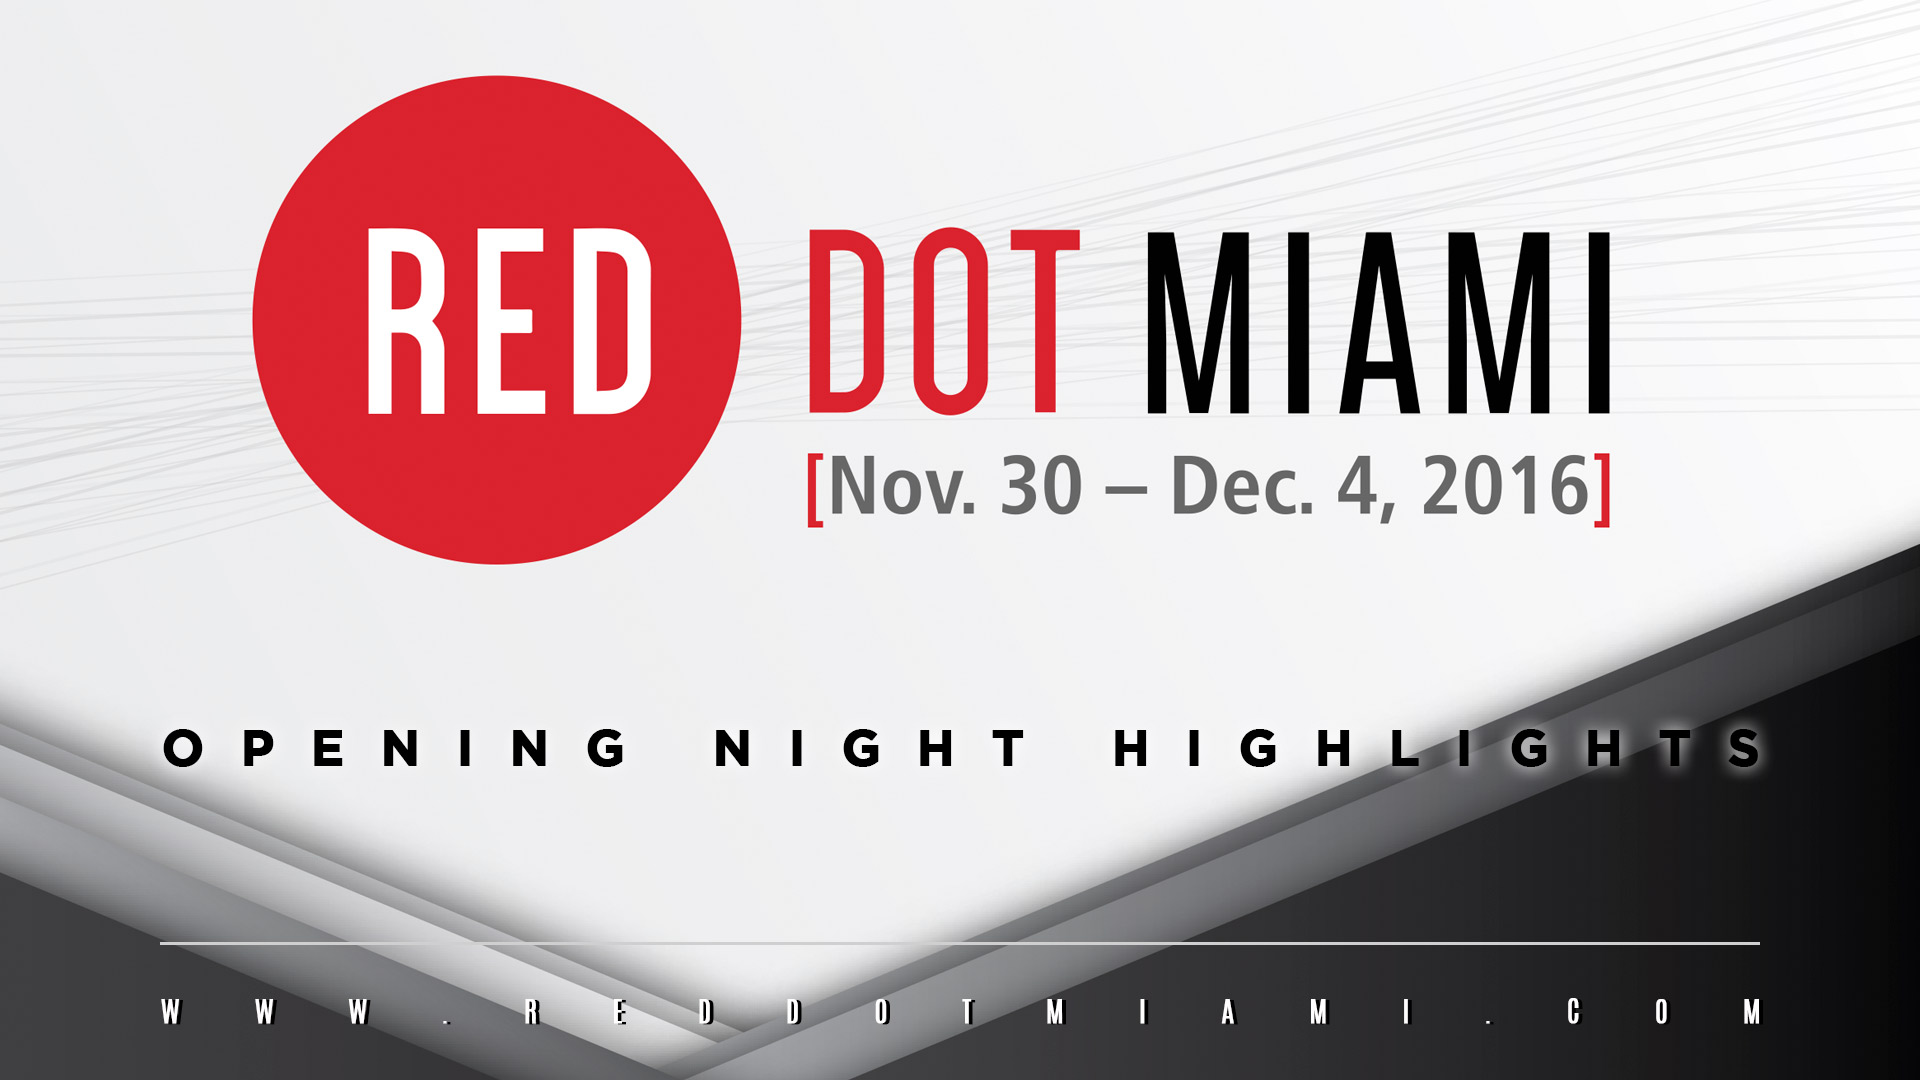 Red Dot Miami 2016 Opening Night